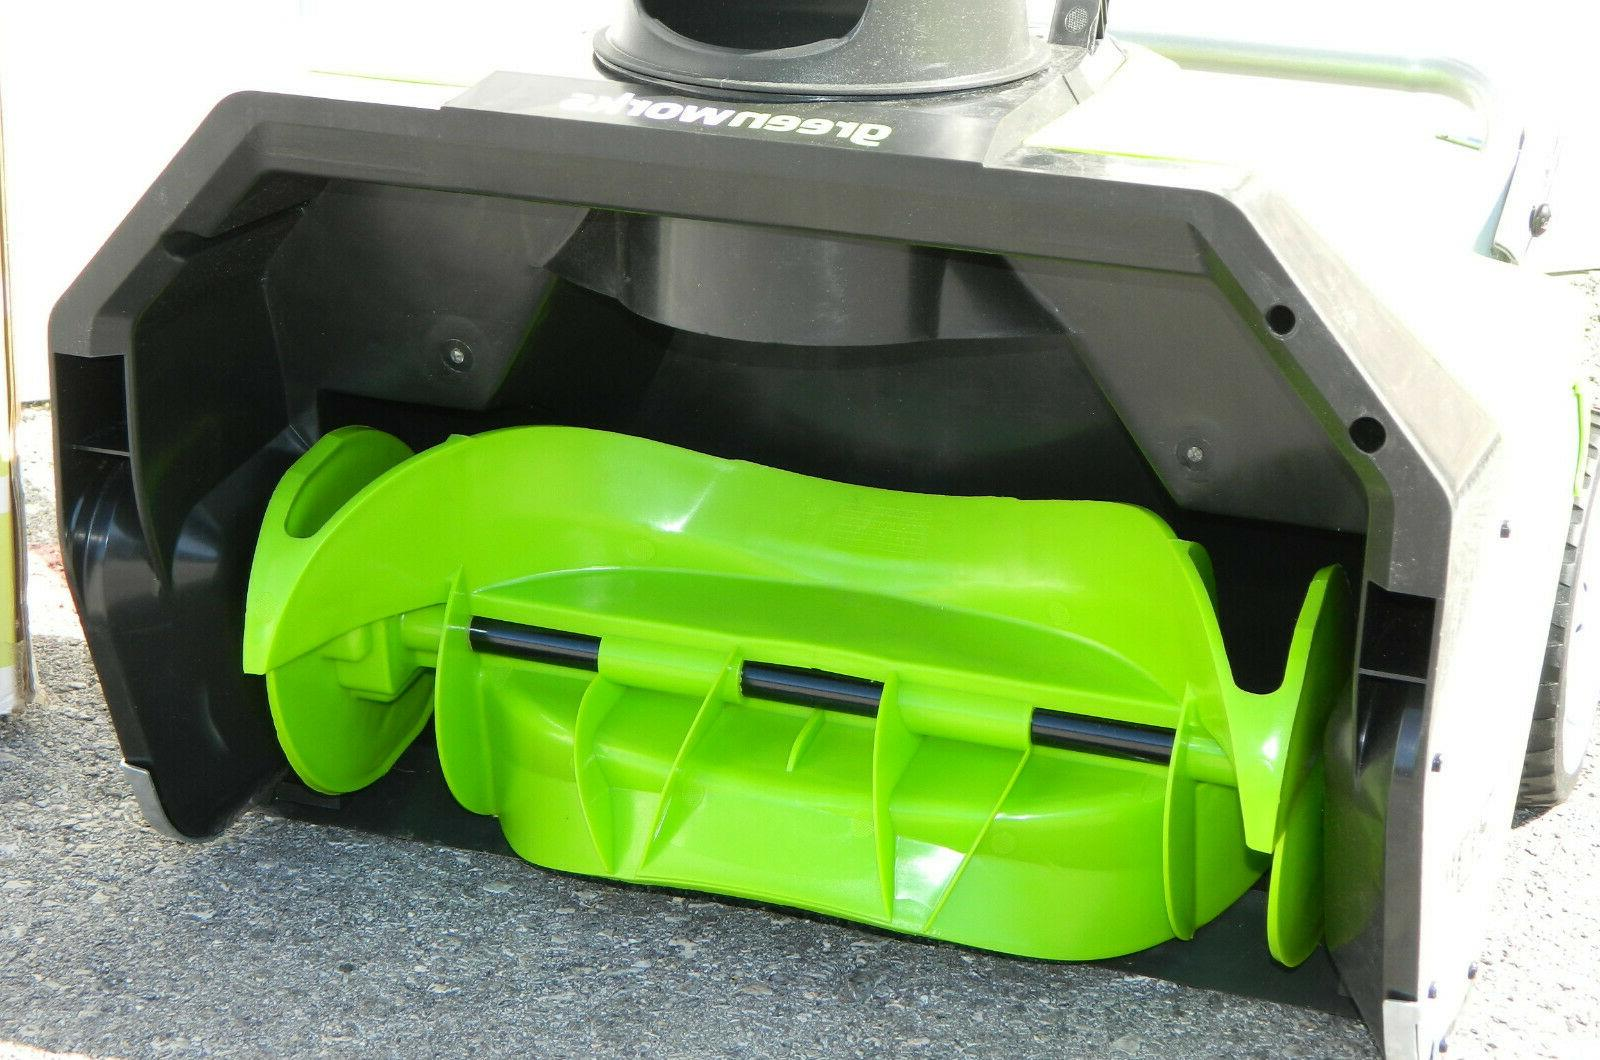 GreenWorks 13 Corded-Electric Thrower Remover Blower